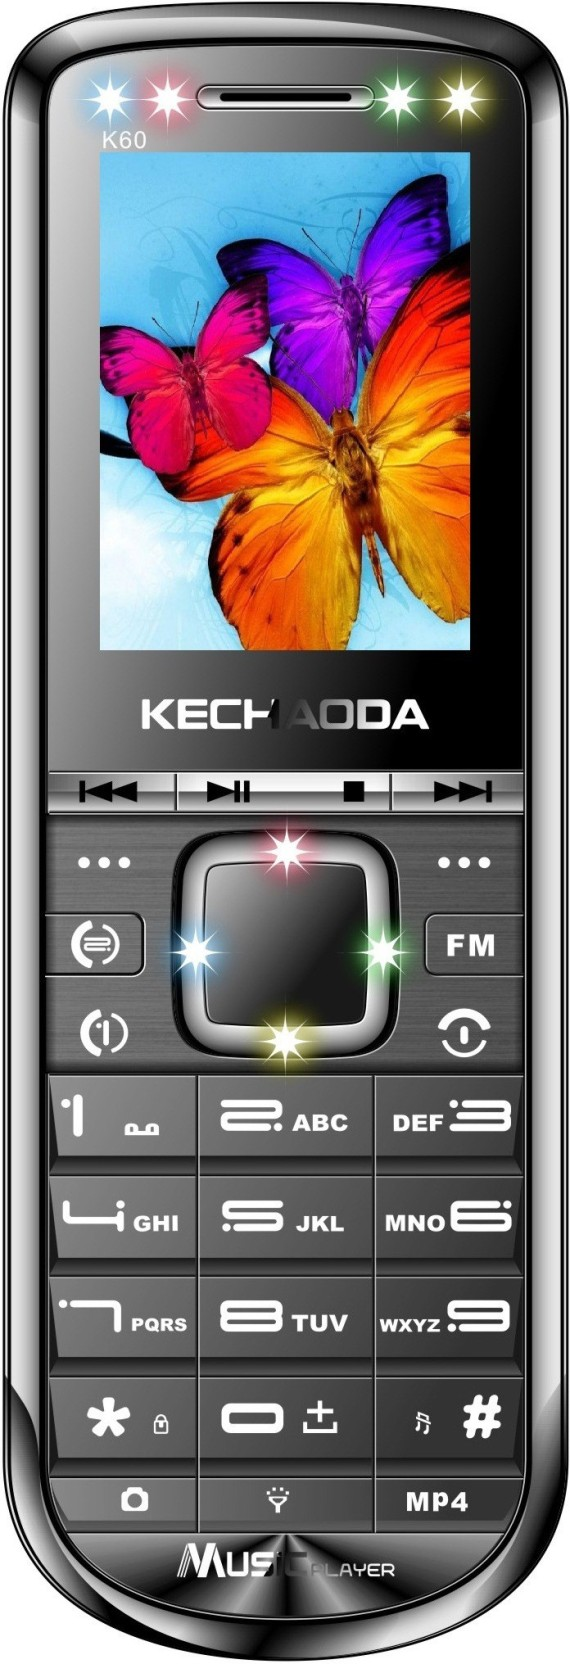 Kechaoda K60 Online At Best Price Only On Nokia Asha 501 Dual Sim Resmi Bright Red Home